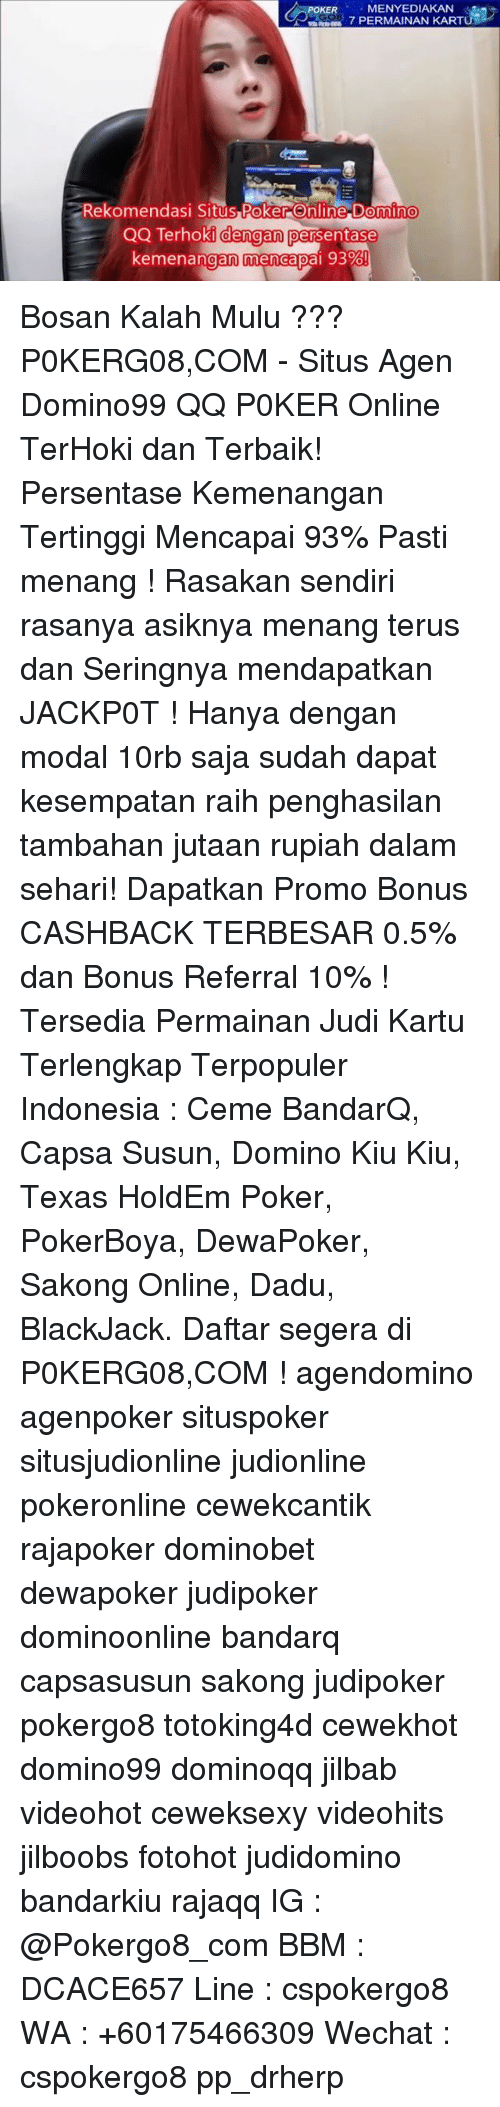 Zynga poker chips for sale indonesia